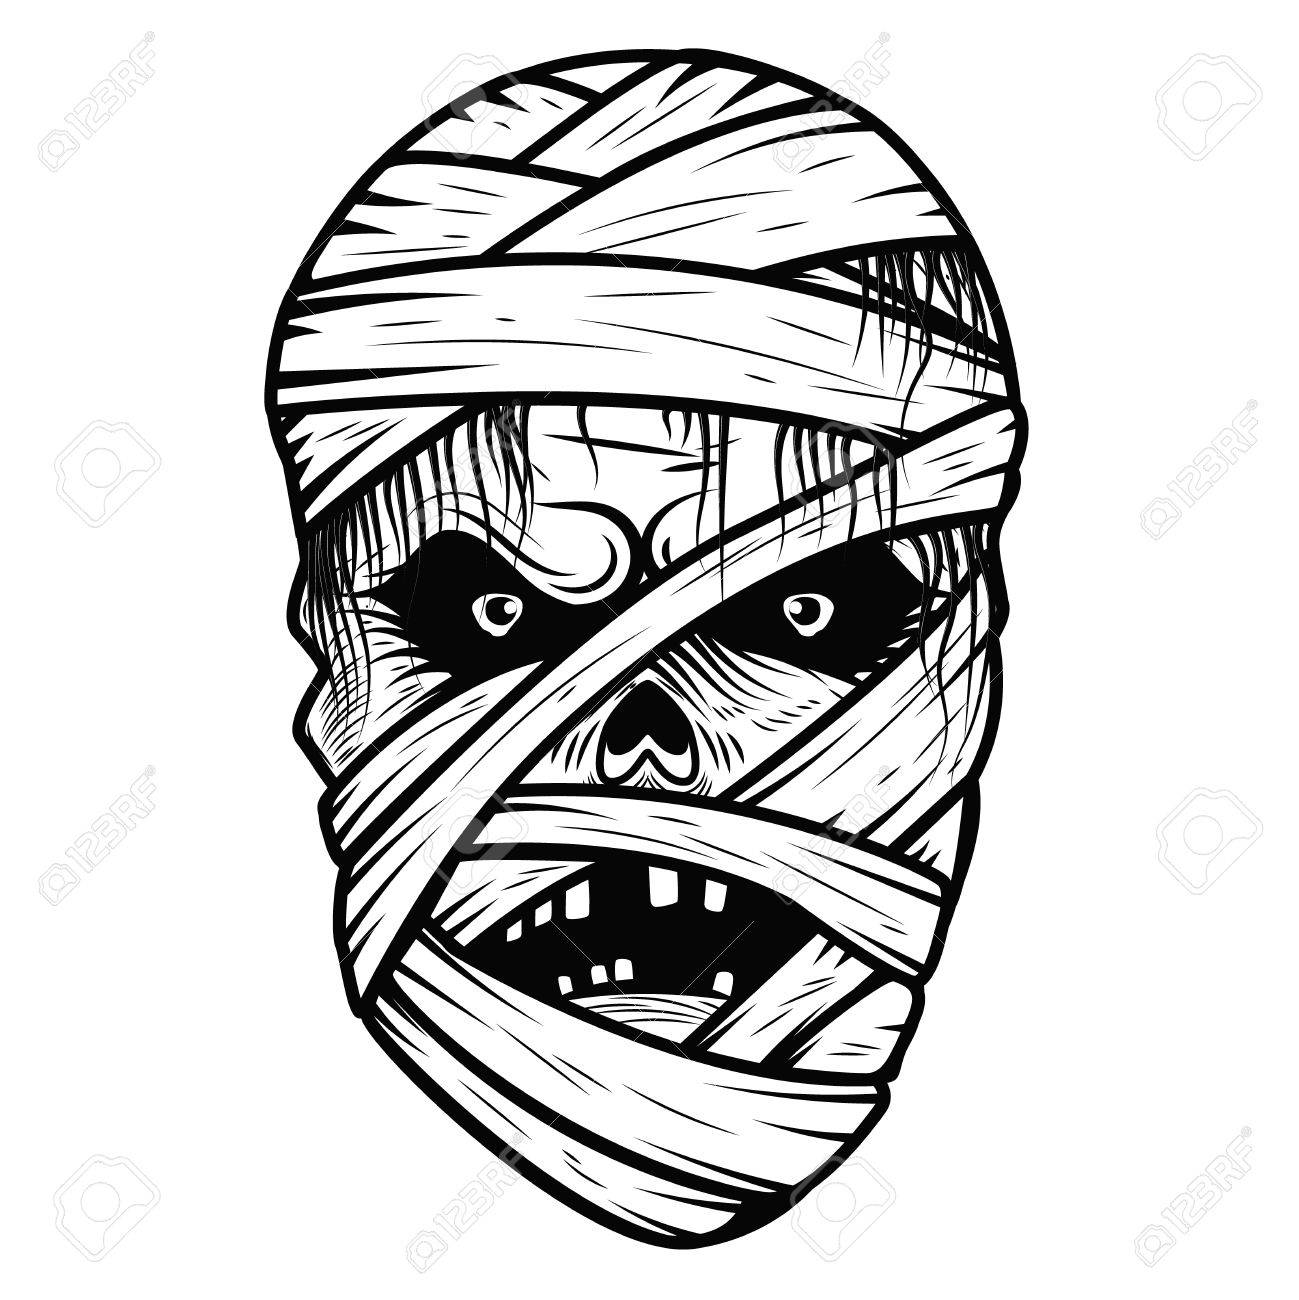 Mummy clipart mummy head, Mummy mummy head Transparent FREE for download on  WebStockReview 2020